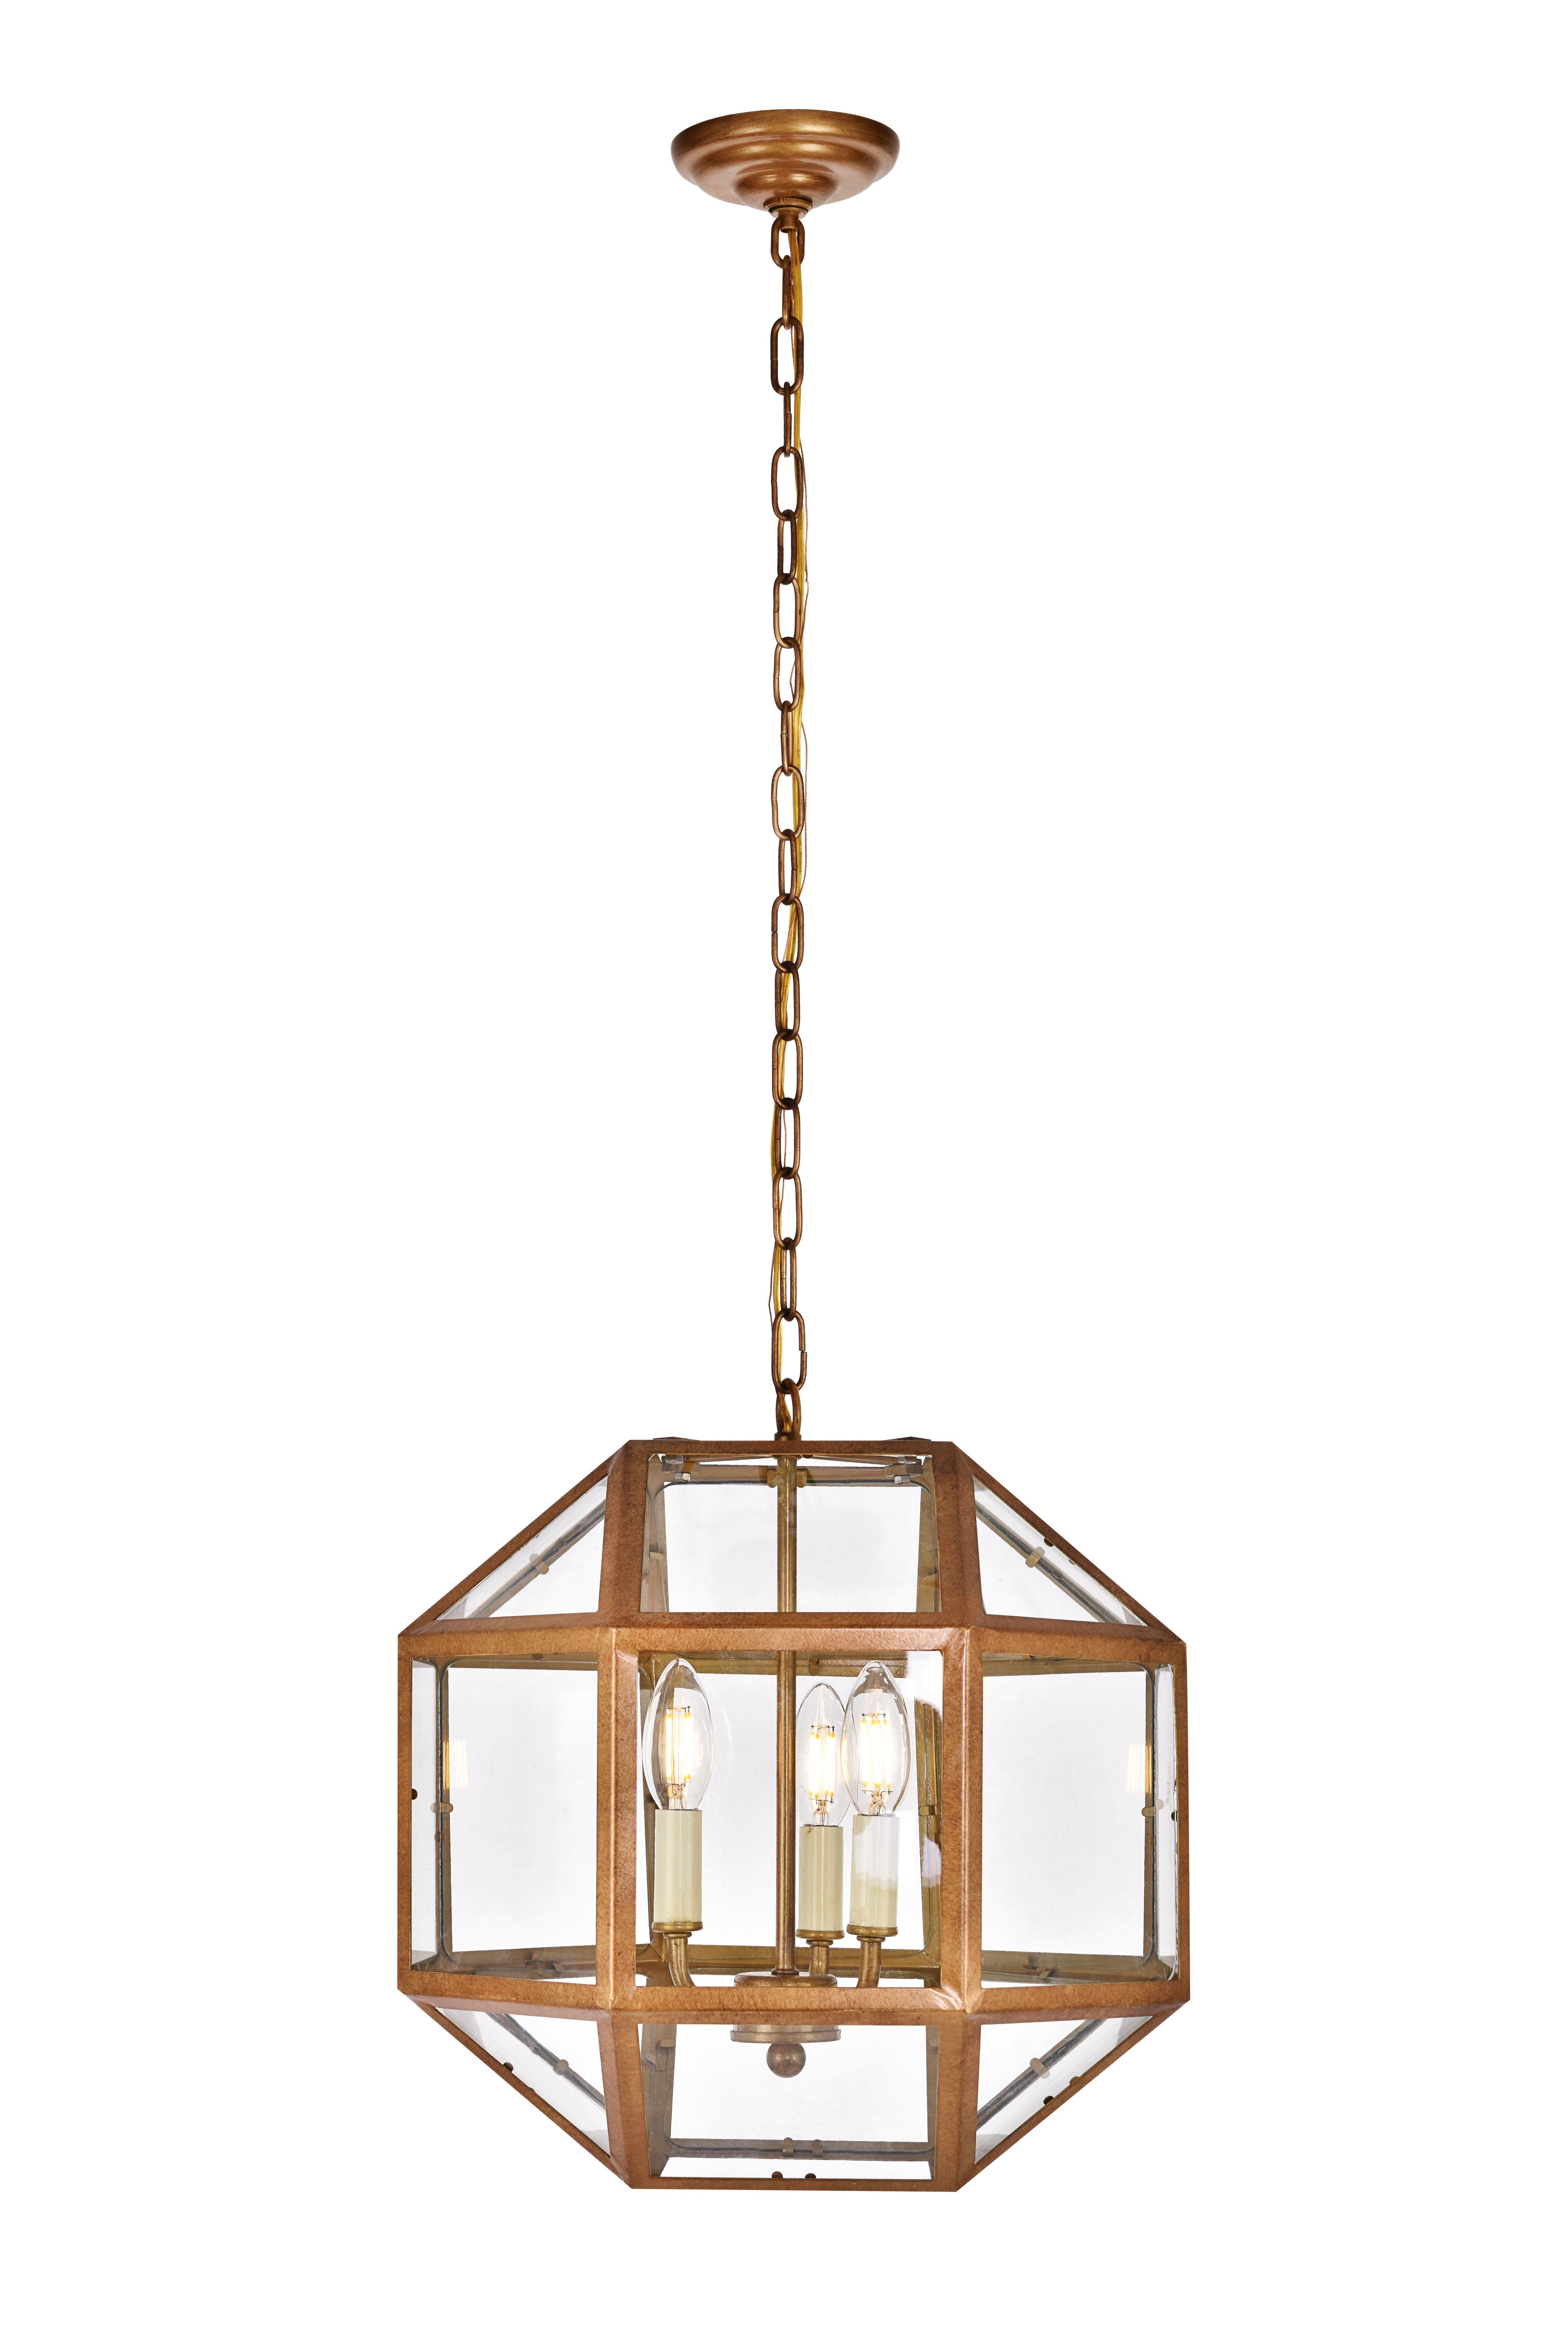 Burkeville 3 Light Geometric Chandelier Pertaining To Shipststour 3 Light Globe Chandeliers (View 7 of 30)